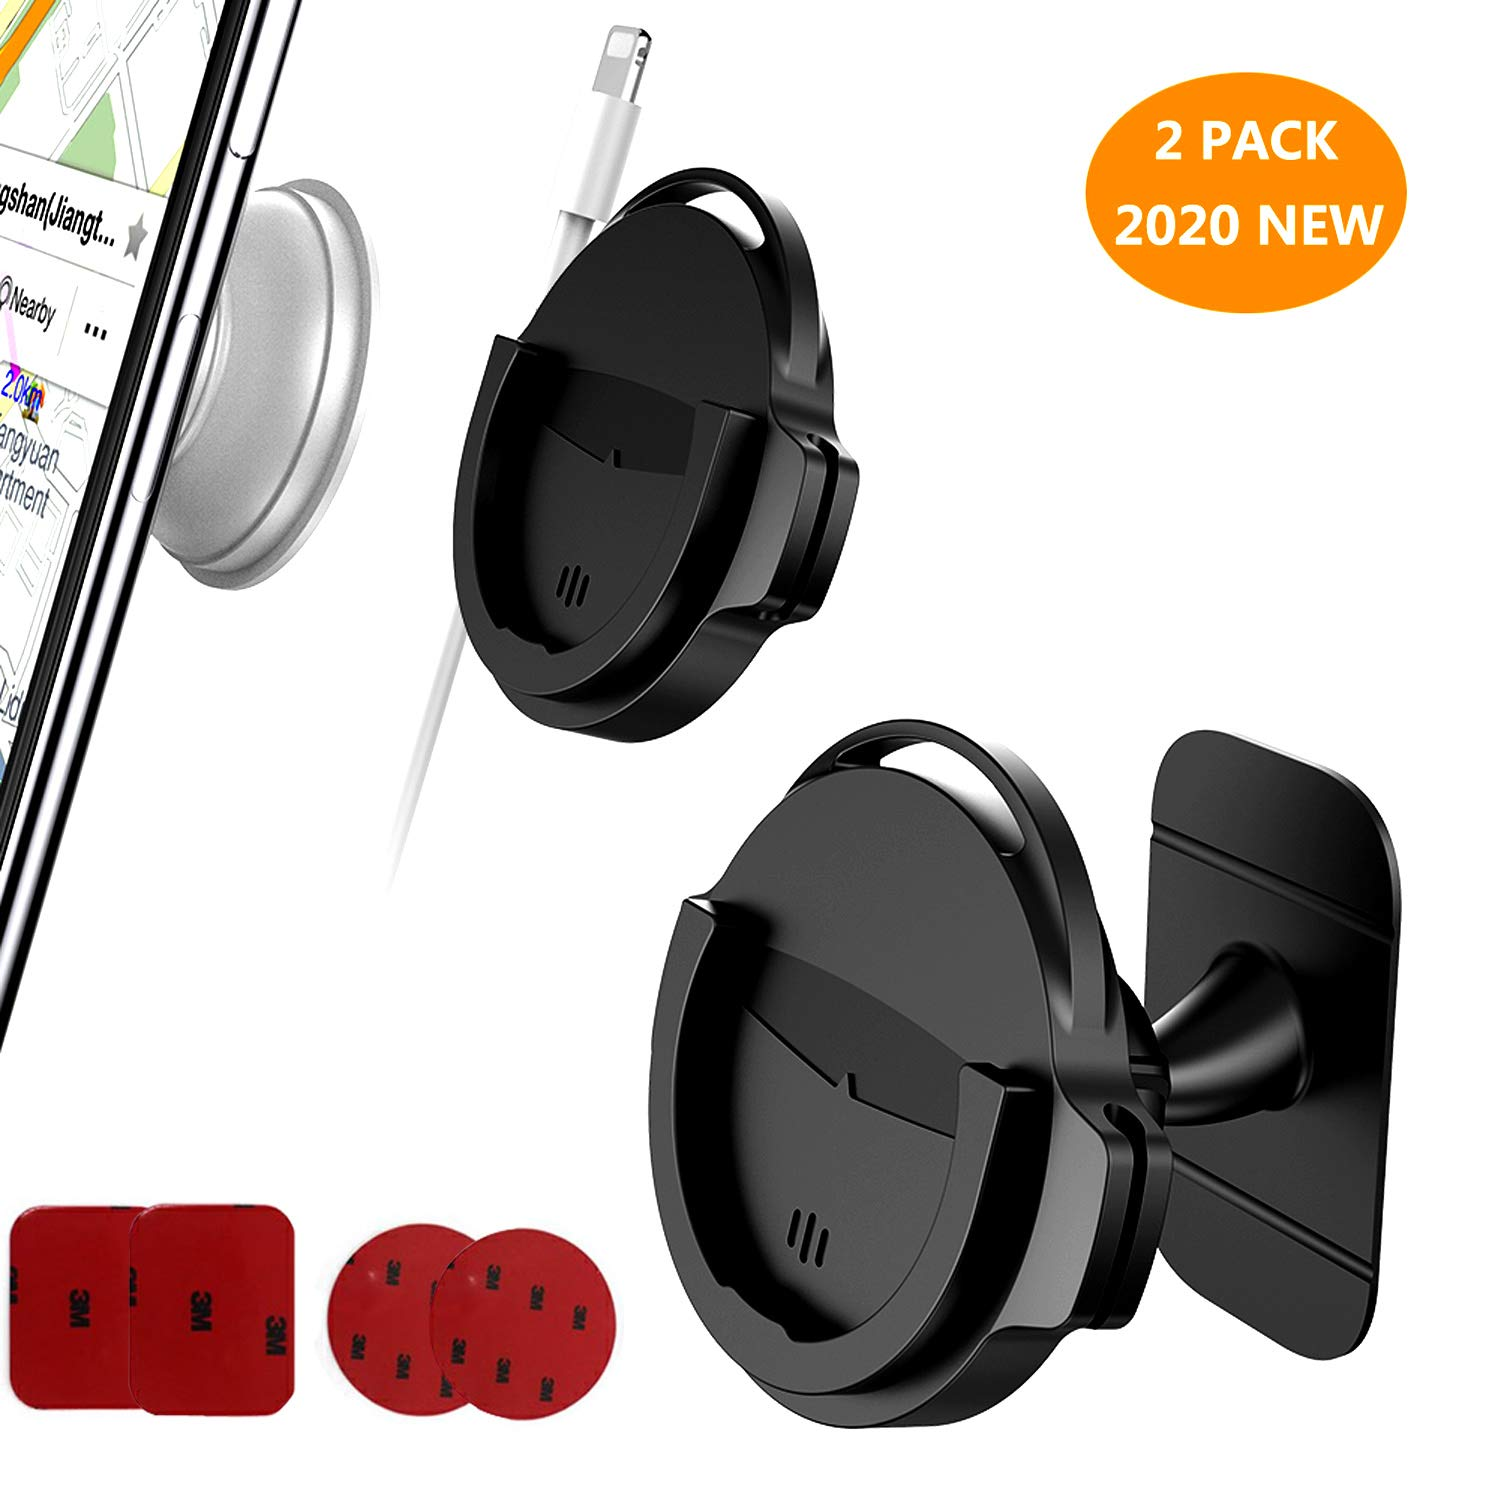 Replacement Used on Dashboard Phone Holder for Cell Phone//GPS Navigation Car Phone Mount for Collapsible Grip//Socket Mount Users with 3M Sticky Adhesive Wall Home Desk